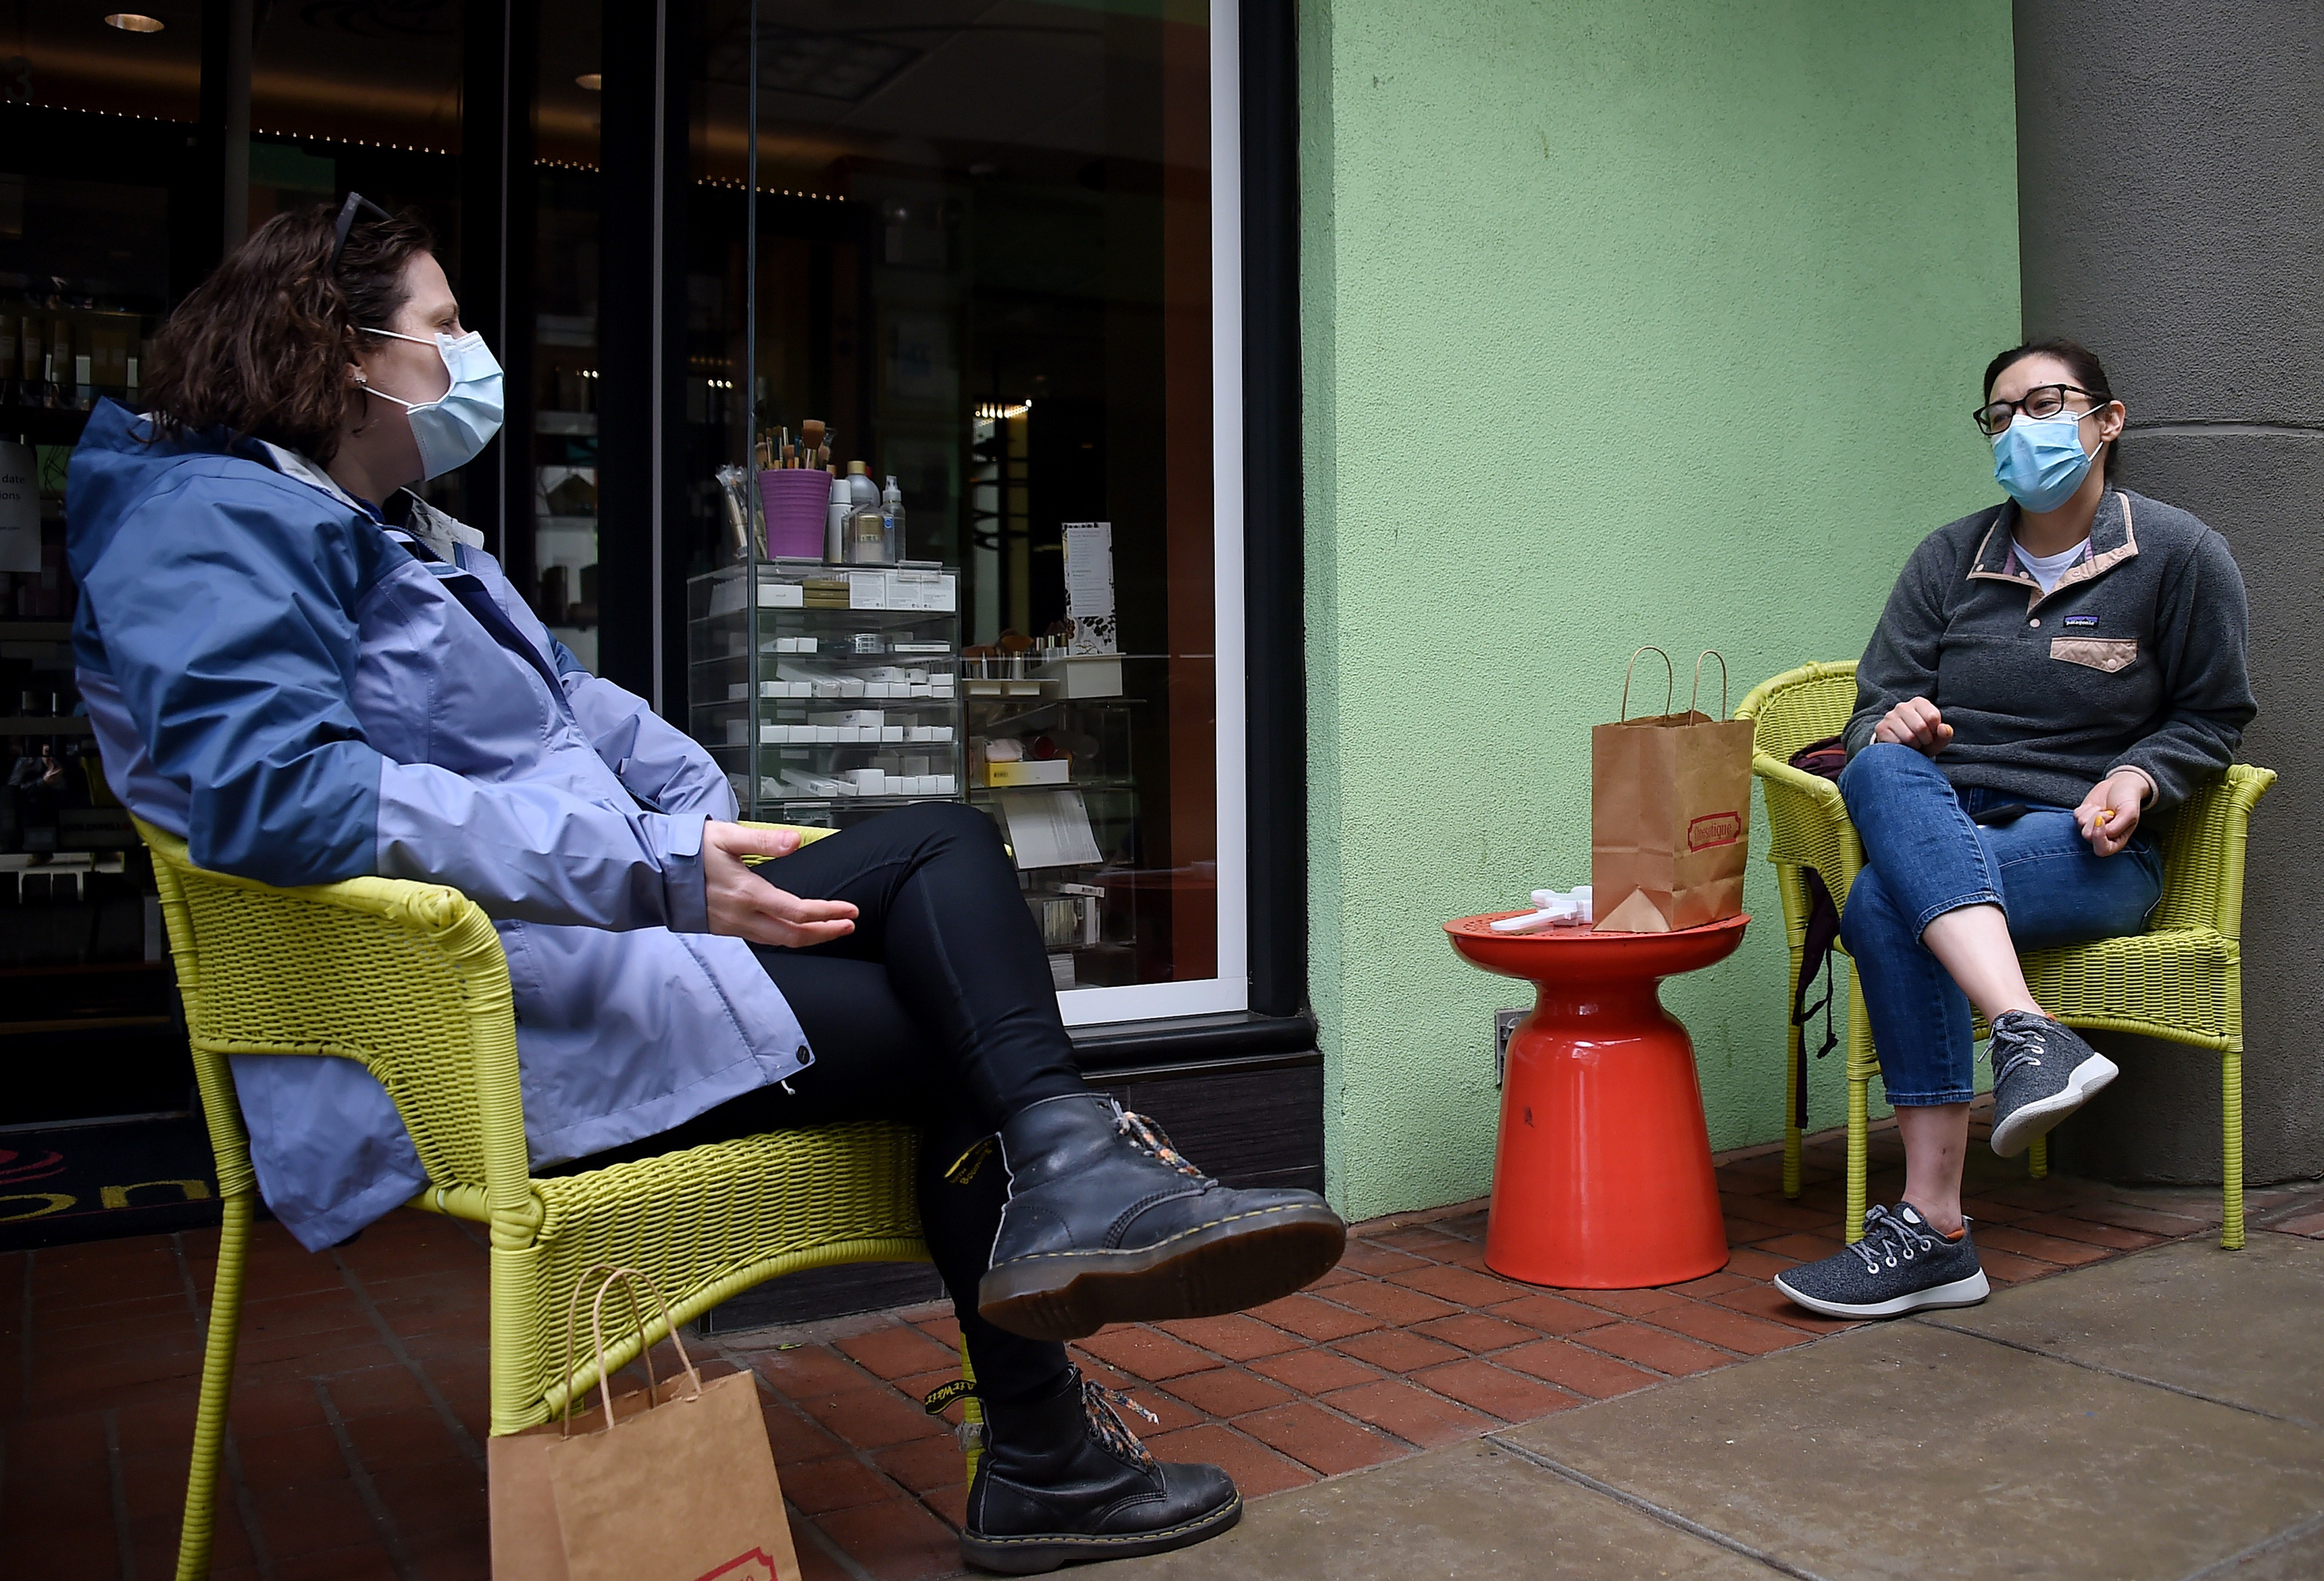 Friends wearing face masks practice social distancing as they chat in front of a shop during the outbreak of COVID-19.